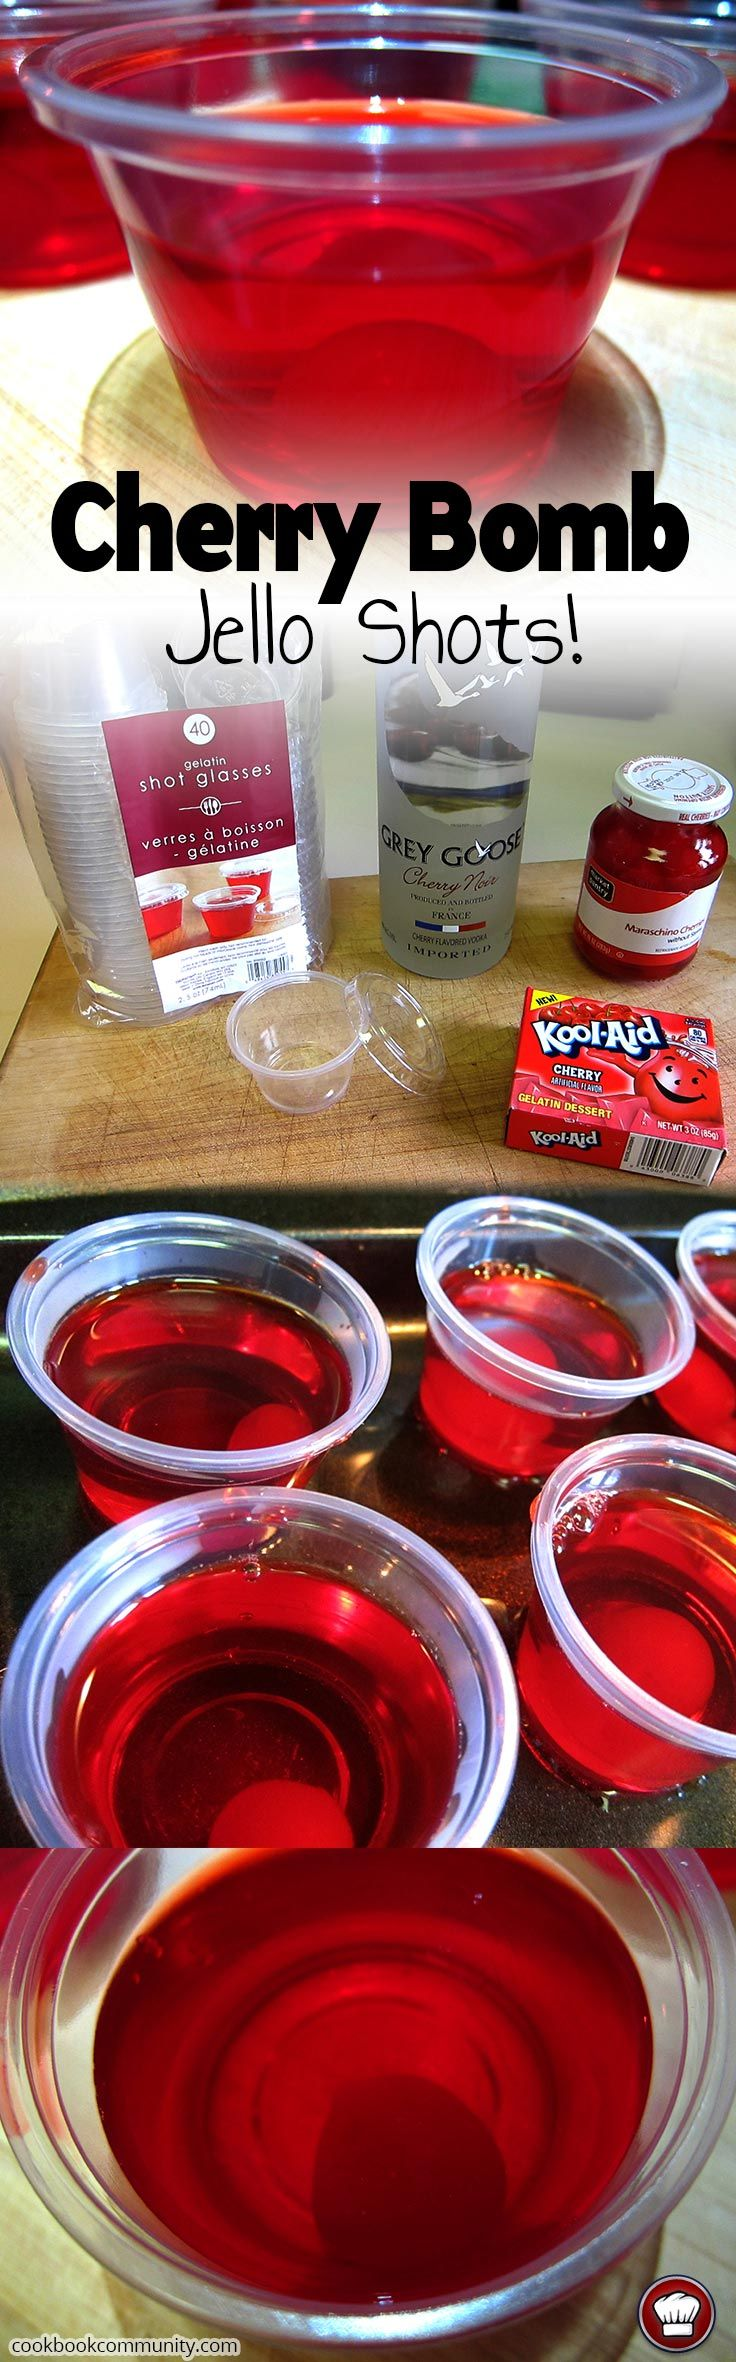 Cherry Bomb Jello Shots Recipe - GOT MAD LUV 4 FOOD, YO